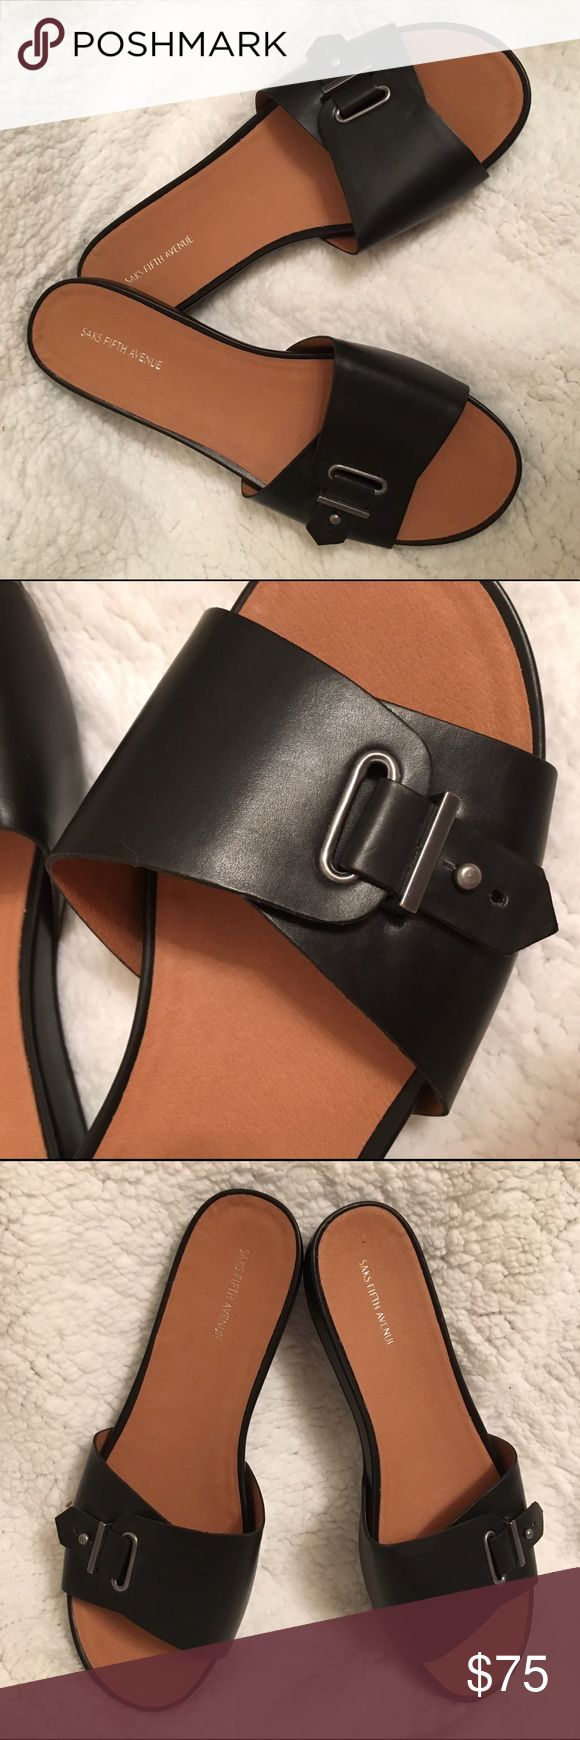 ⭐️2 hour sale🌟 Saks Fifth Avenue black sandals Saks Fifth Avenue brand. Beautiful black sandals with a buckle. Size 11. Never been worn. Saks Fifth Avenue Shoes Sandals